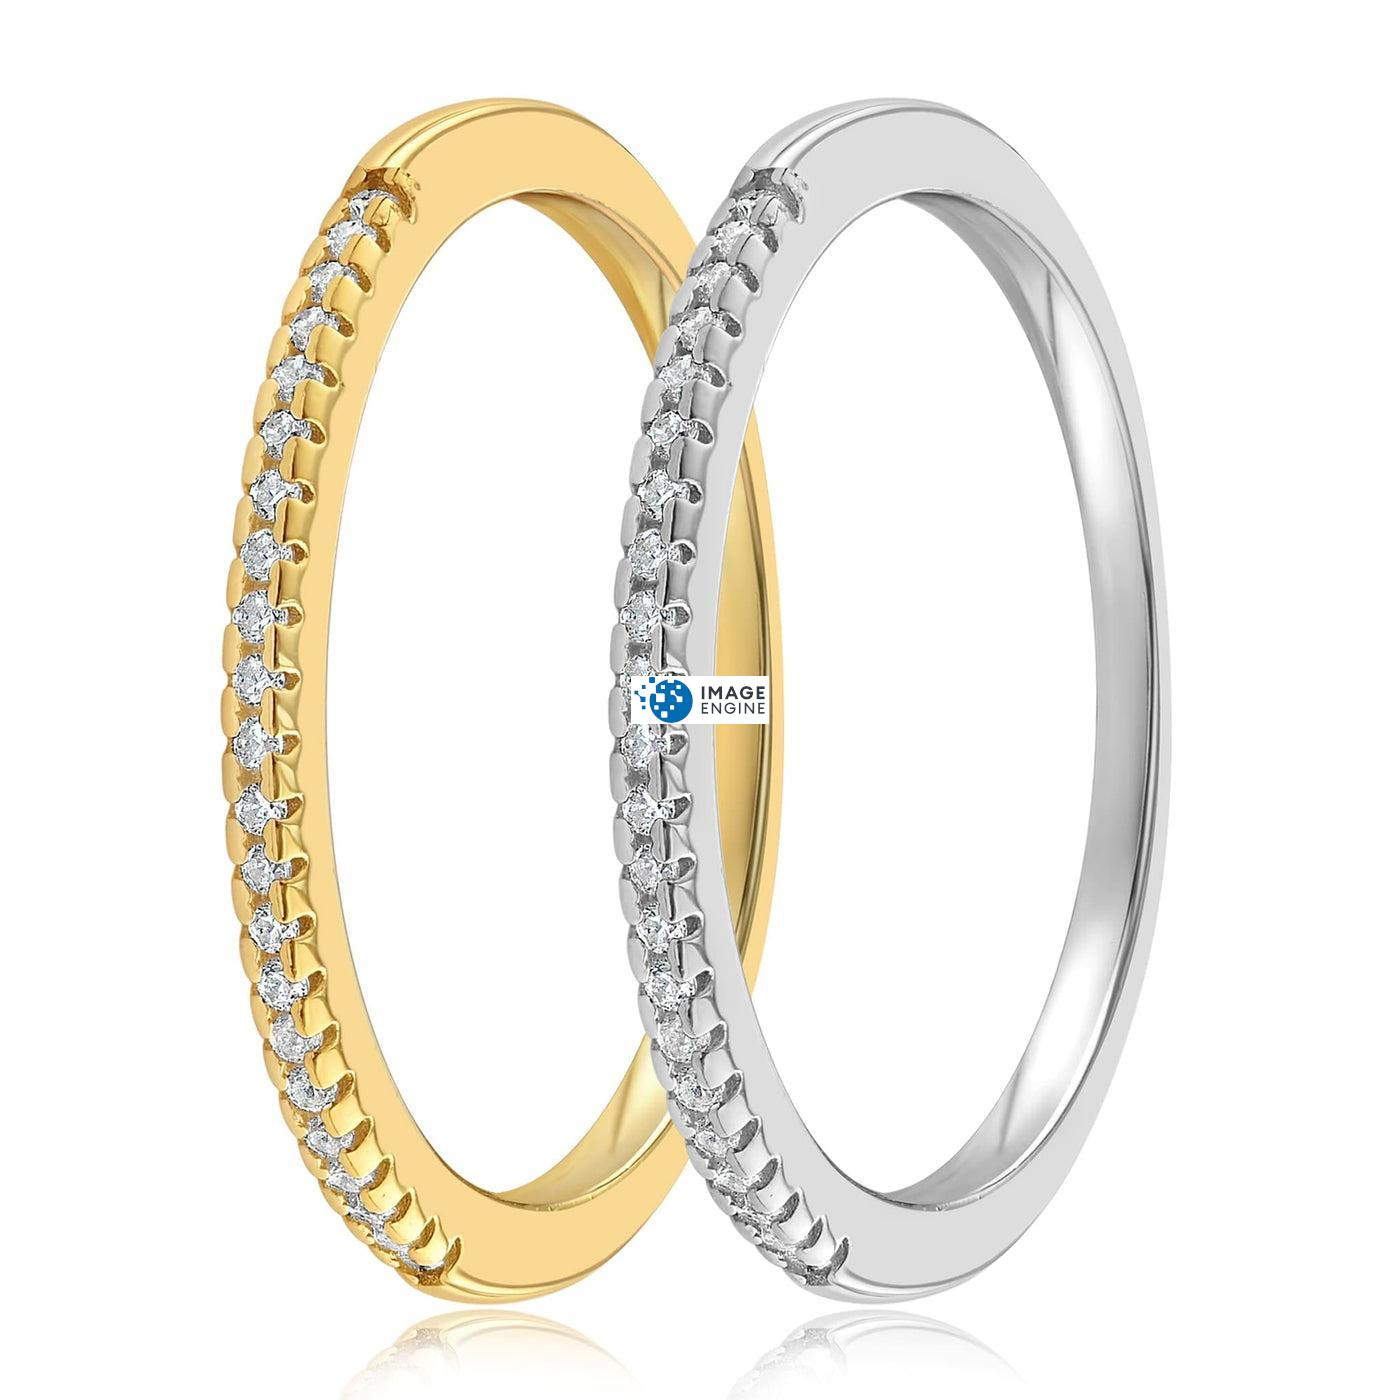 Brianna Bezel Ring - SideBy Side - 18K Yellow Gold and 925 Sterling Silver